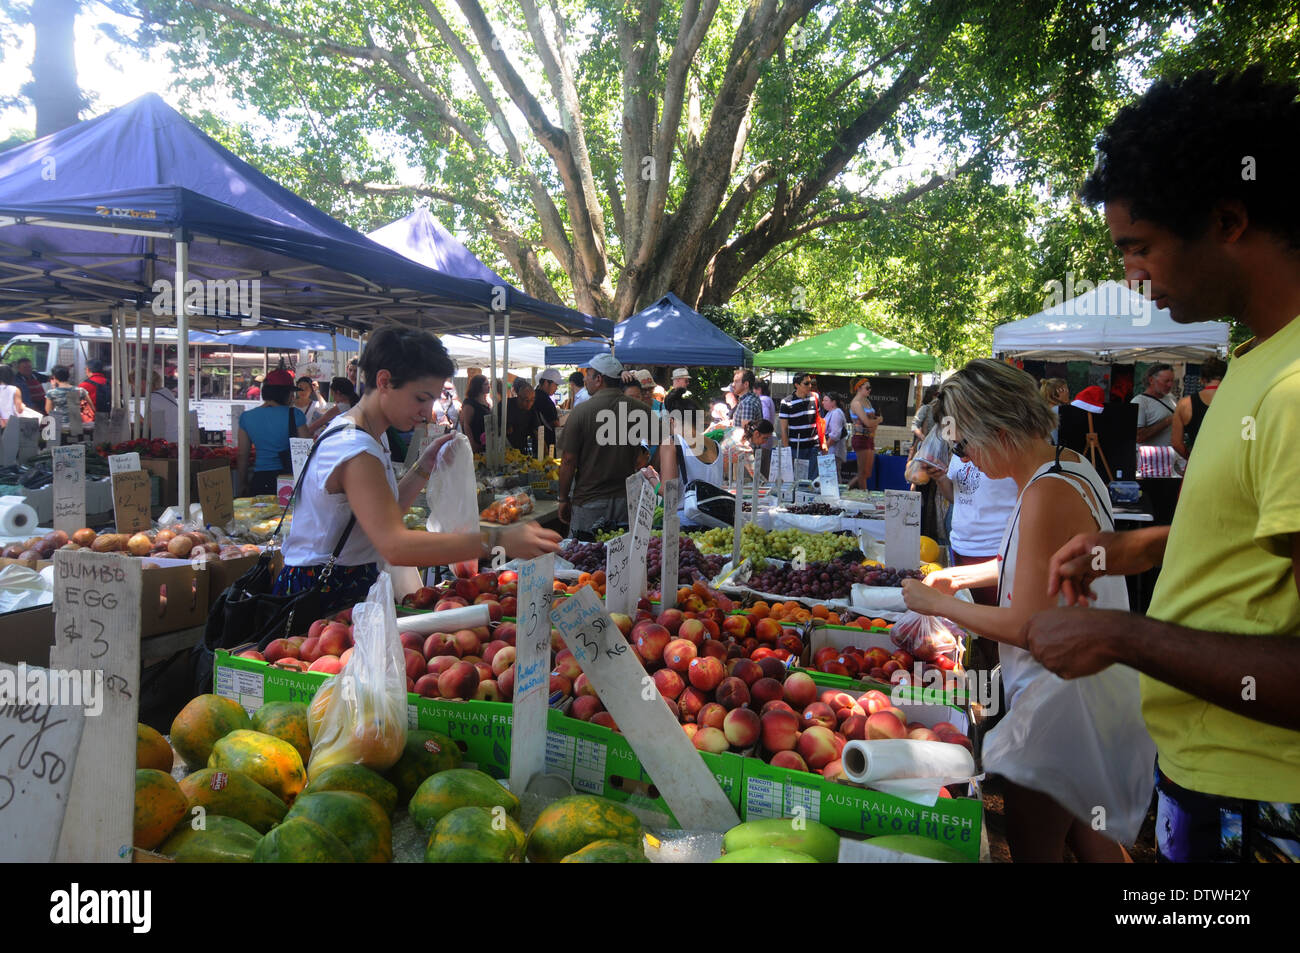 Fruit stall at outdoor weeked market in the shade of enormous trees, West End, Brisbane, Queensland, Australia. No MR or PR - Stock Image